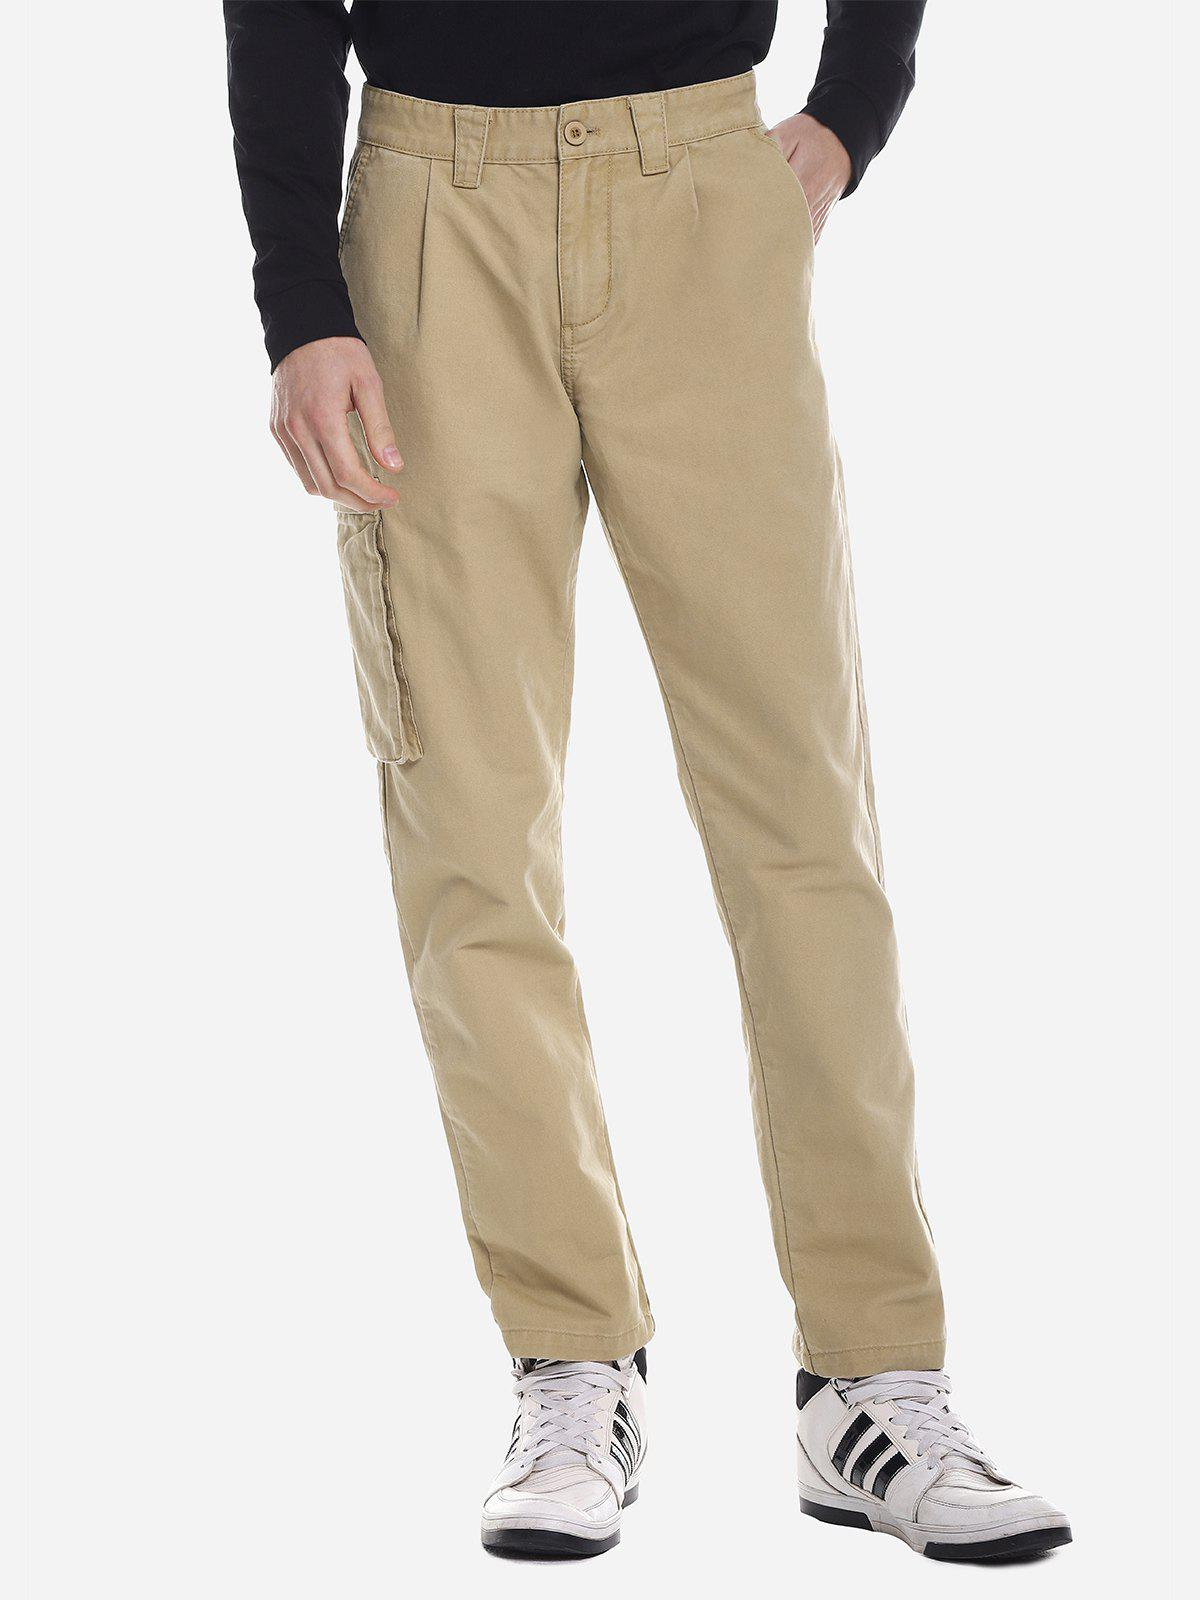 Chic ZANSTYLE Men Side Pocket Belted Pants